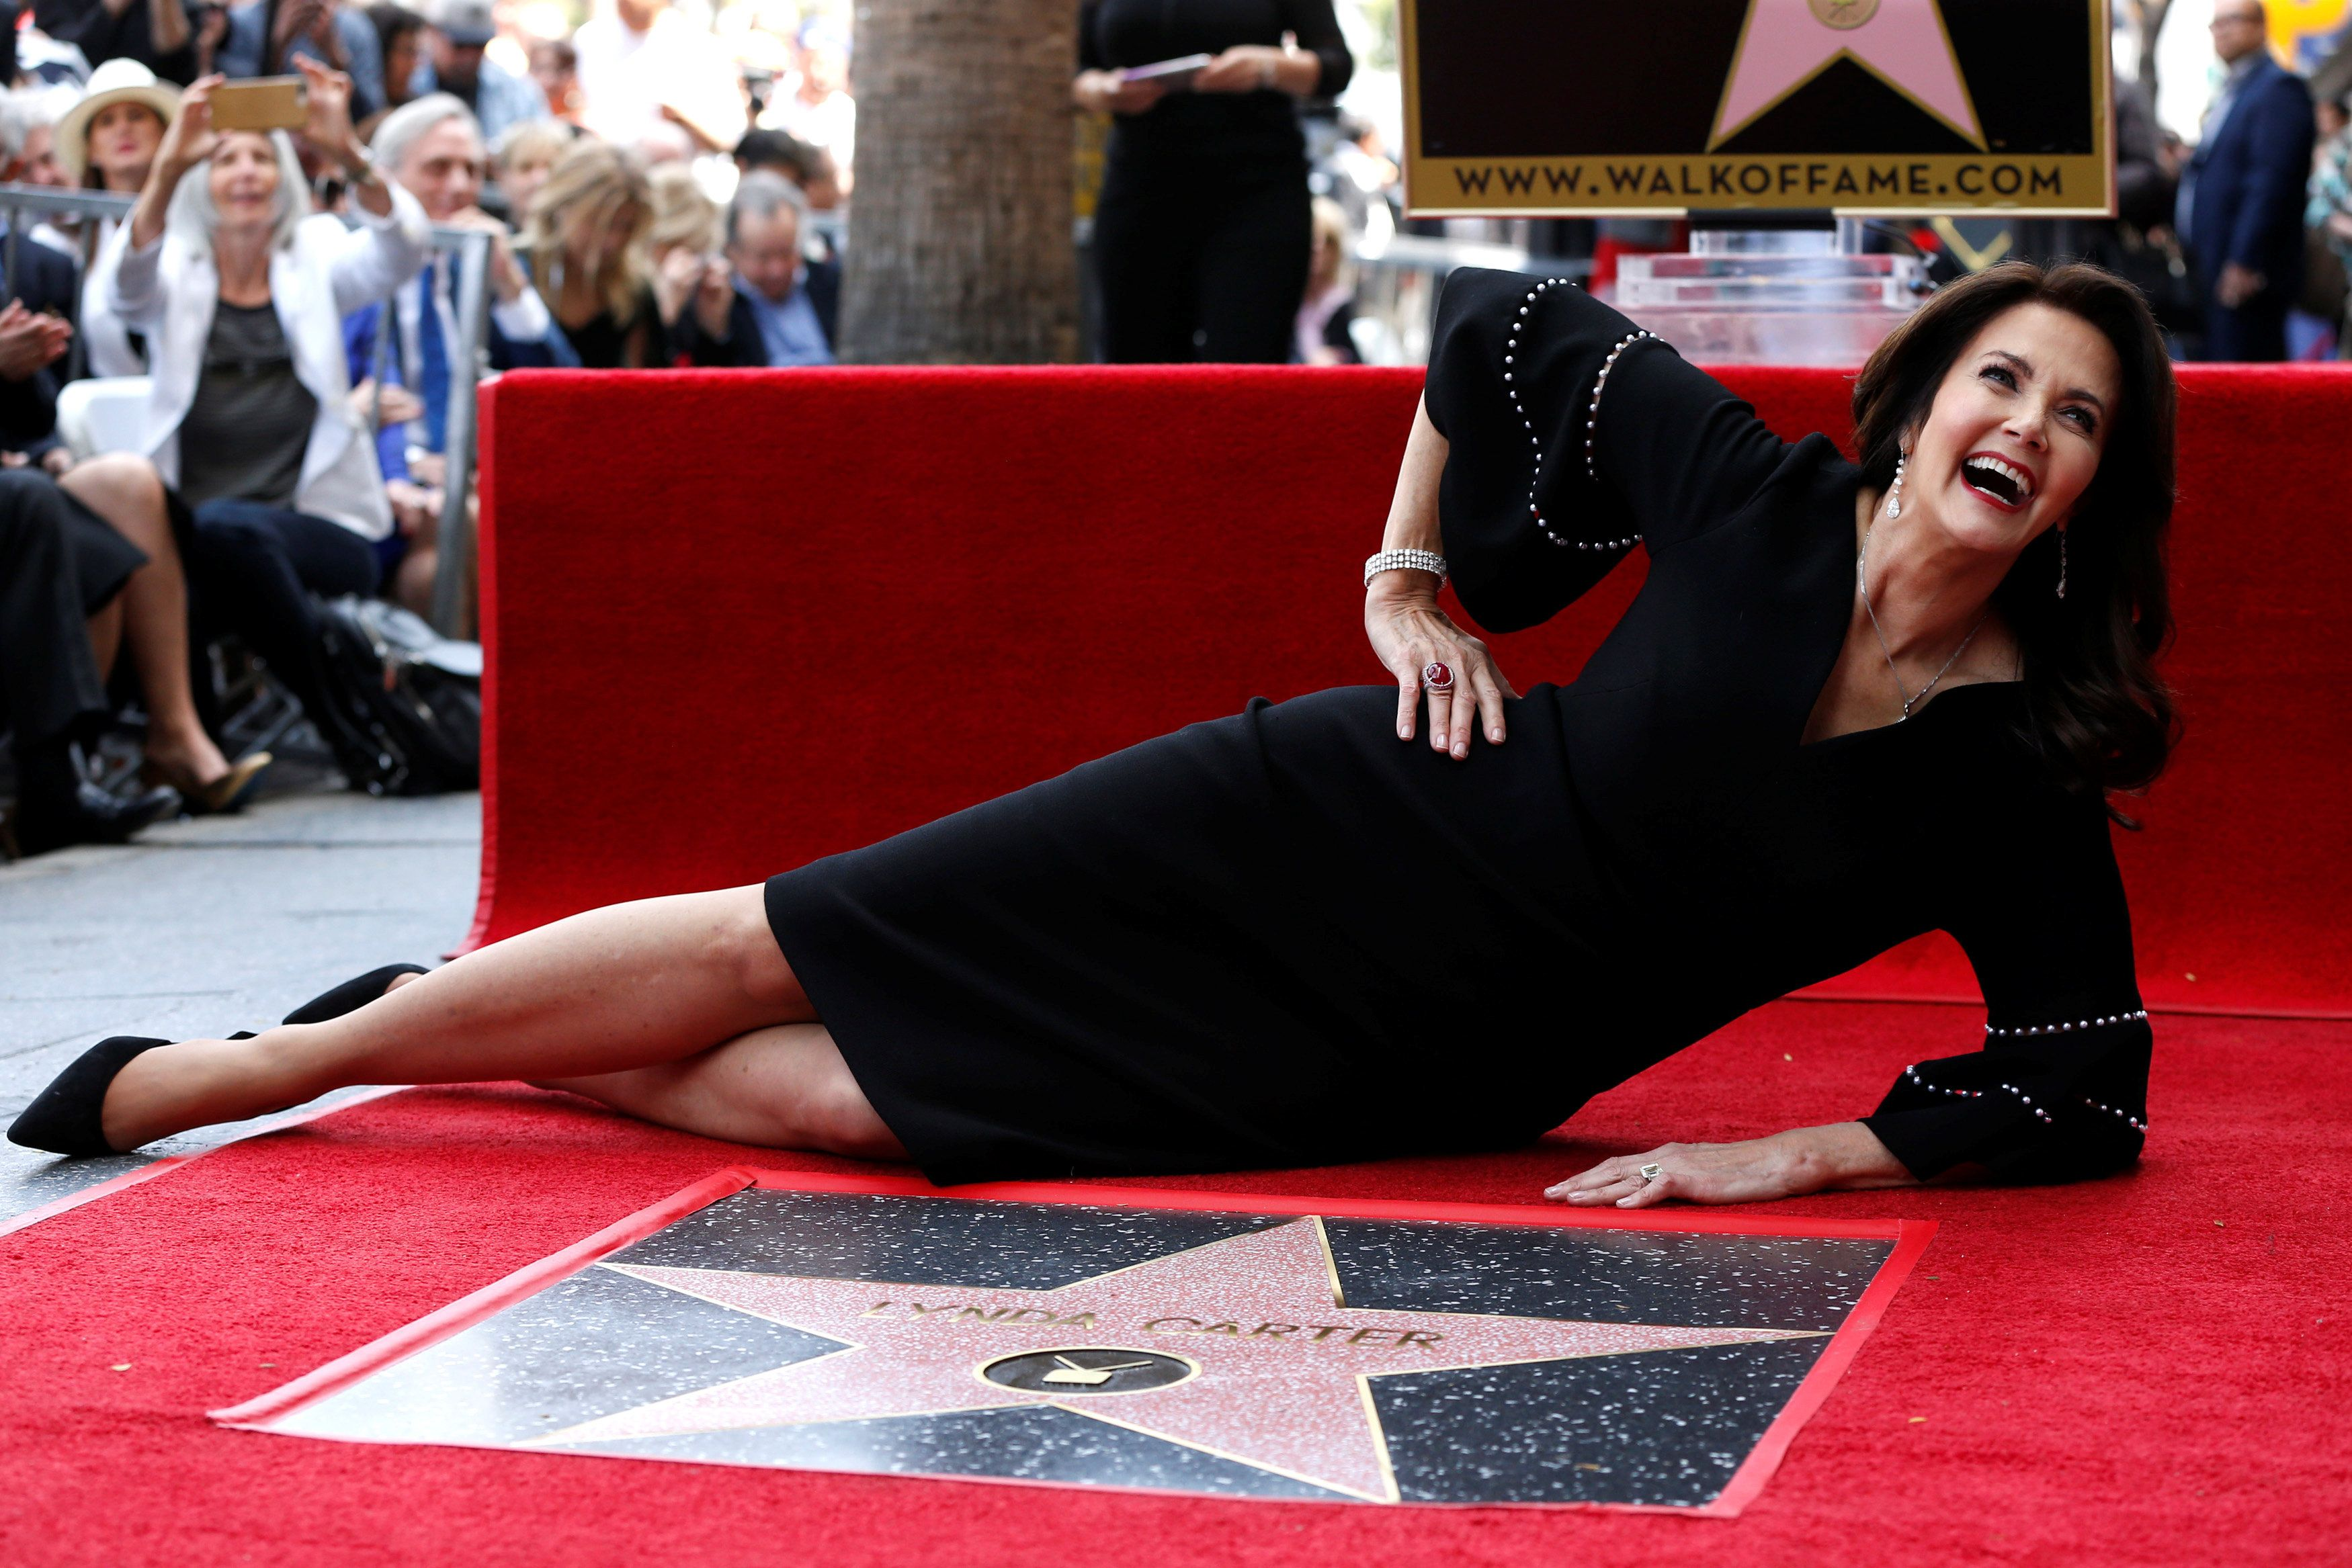 Actor Lynda Carter poses after unveiling her star on the Hollywood Walk of Fame in Los Angeles, California, U.S., April 3, 2018. REUTERS/Mario Anzuoni